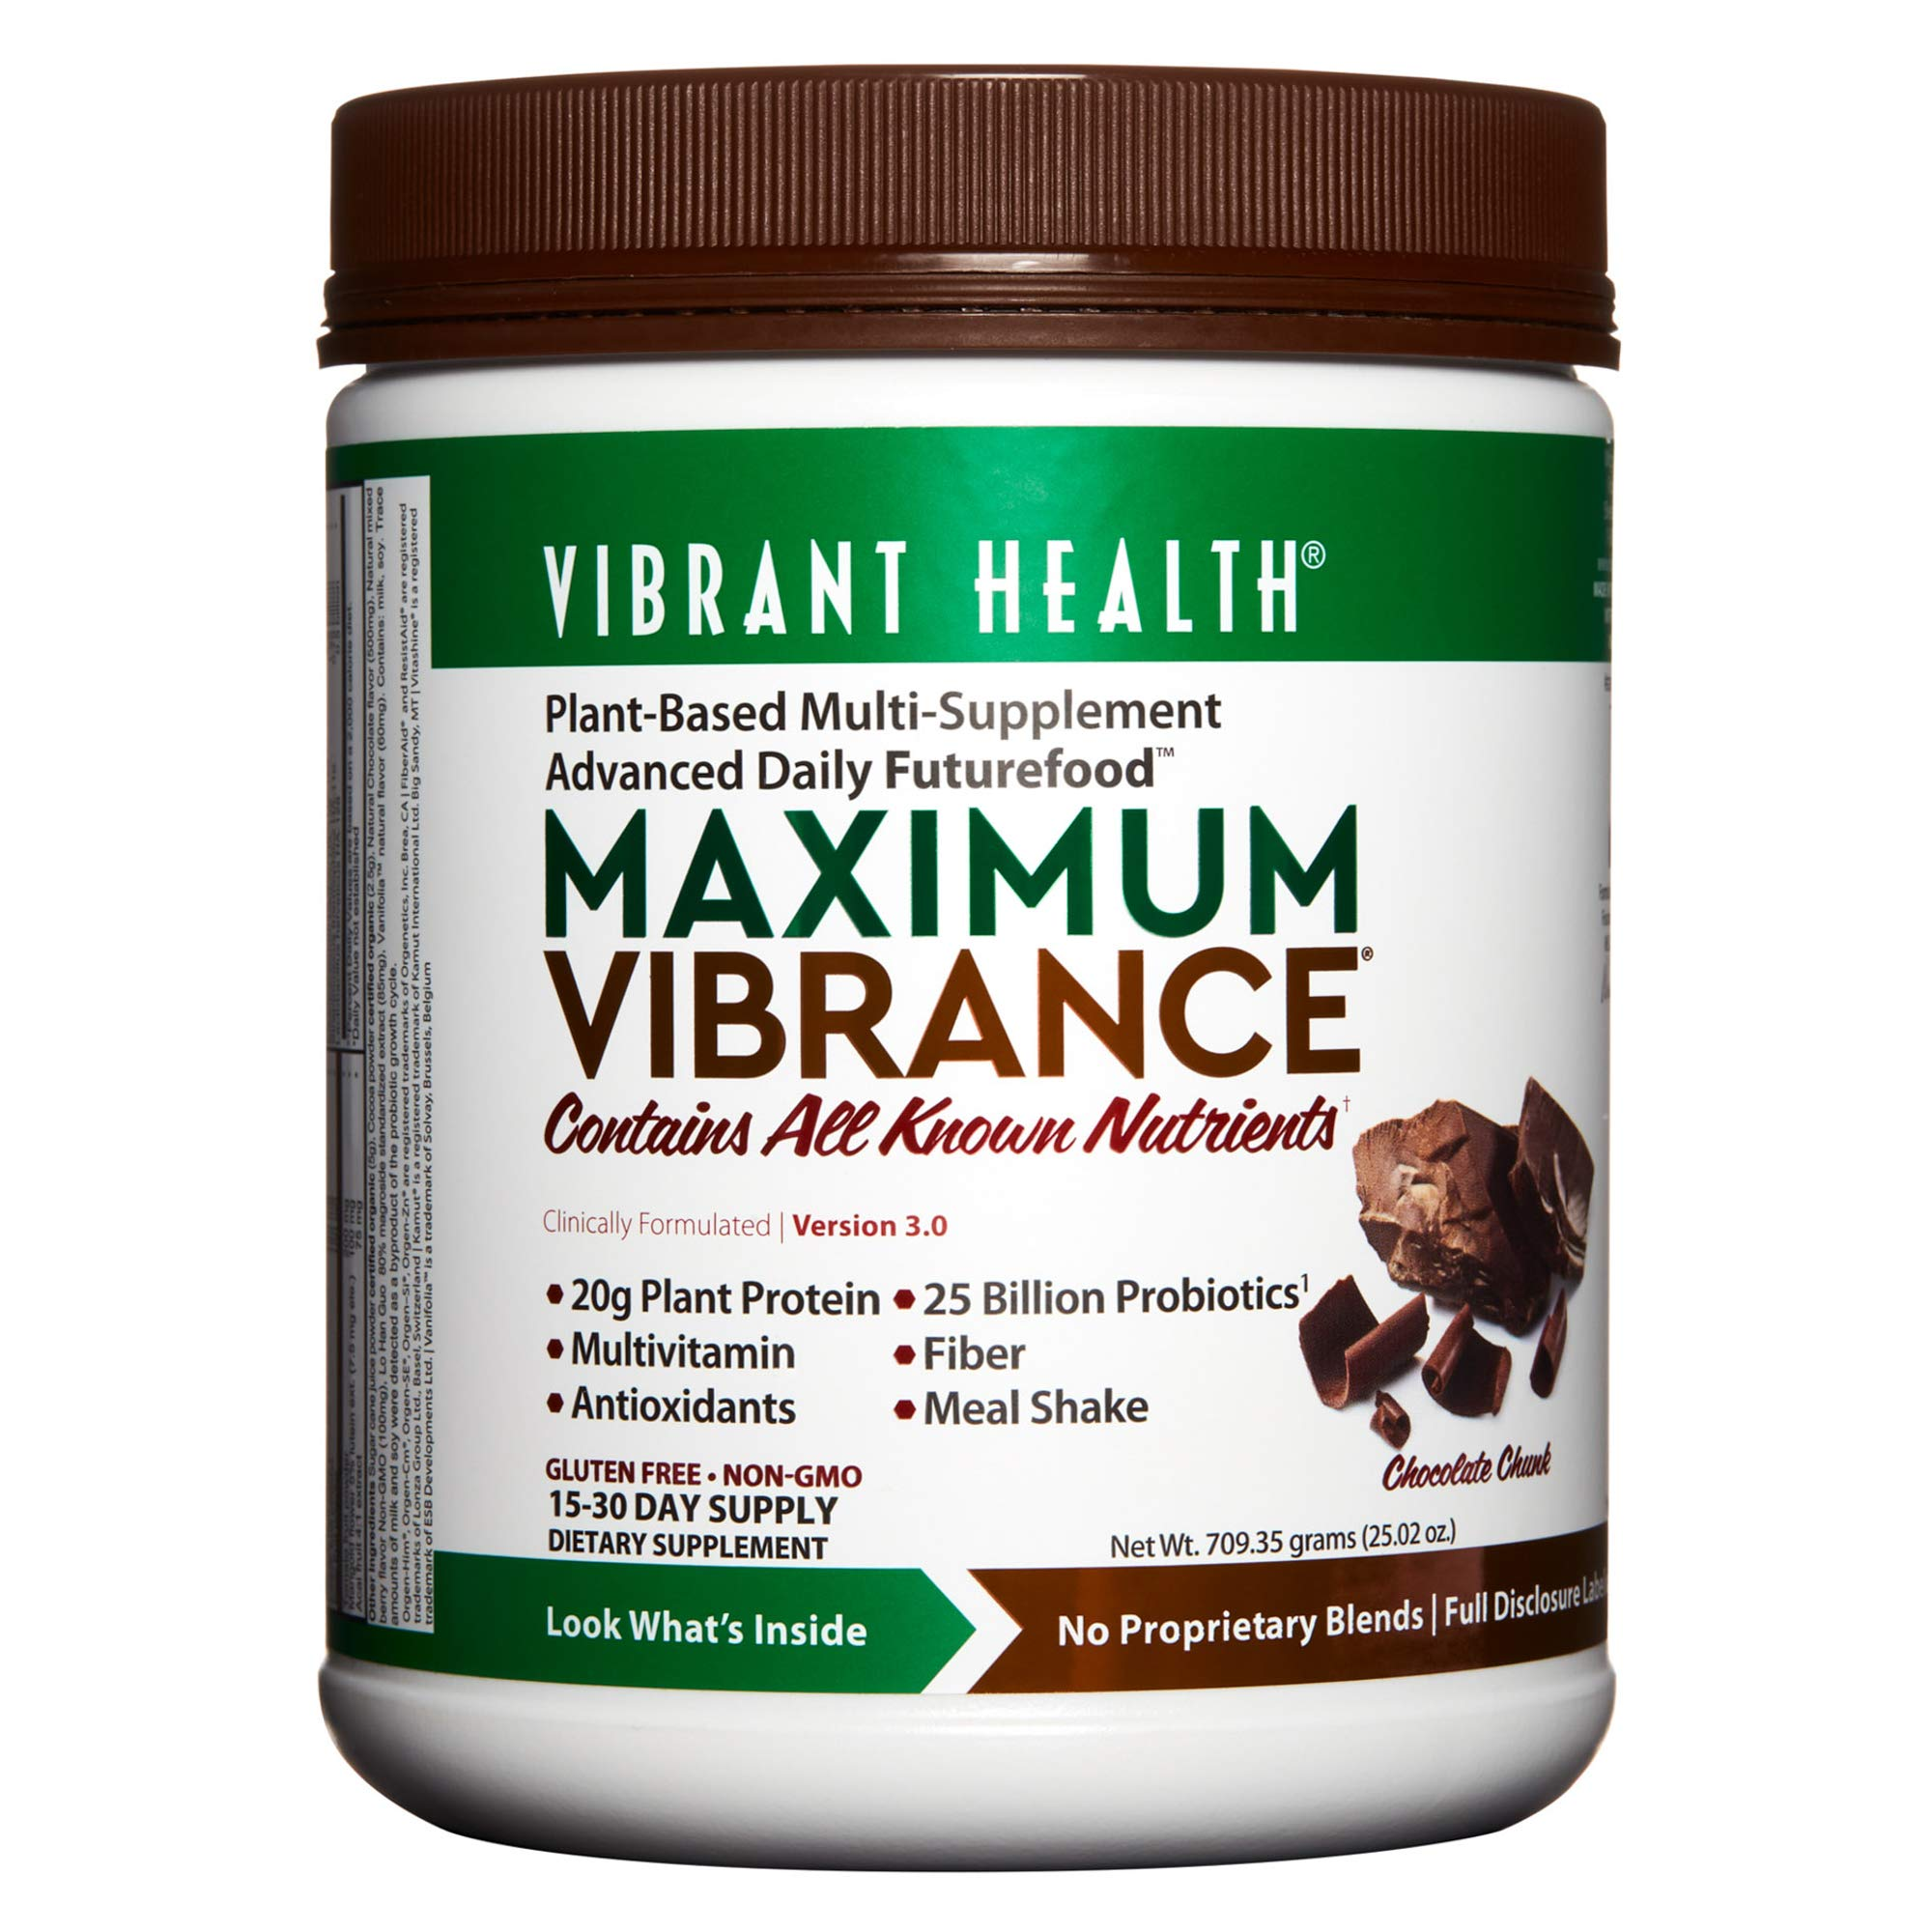 Vibrant Health - Maximum Vibrance, Plant-Based Meal Replacement Rich with Vitamins, Minerals, Antioxidants, and Protein, Gluten Free, Vegetarian, Non-GMO, 15 Servings by Vibrant Health